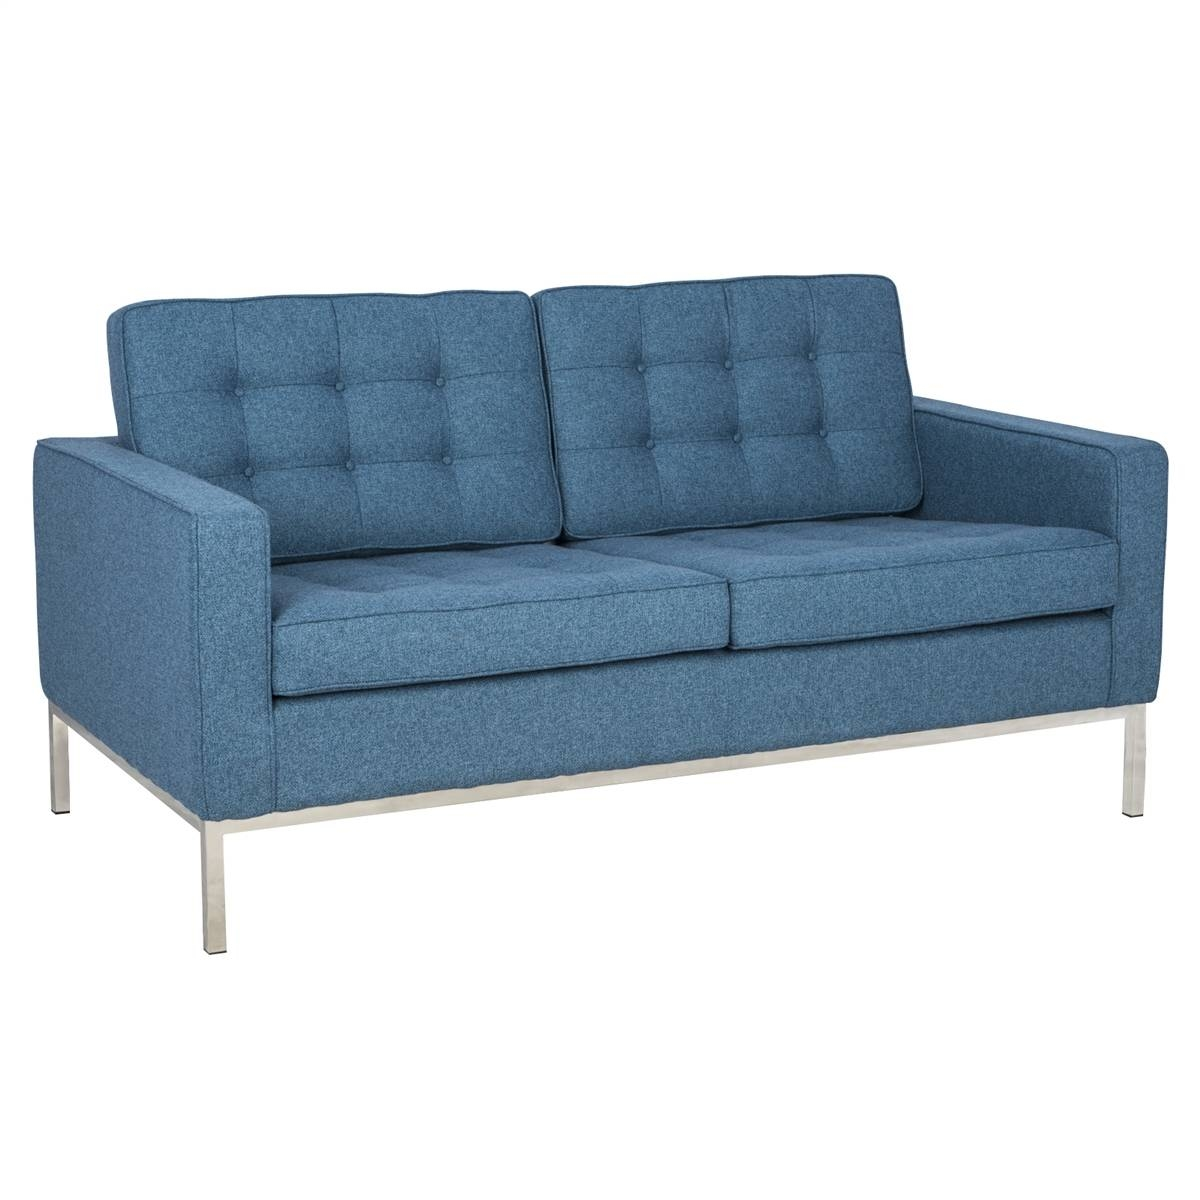 Leisuremod Modern Florence Style Loveseat Sofa In Blue Tweed within Florence Sofas And Loveseats (Image 23 of 25)